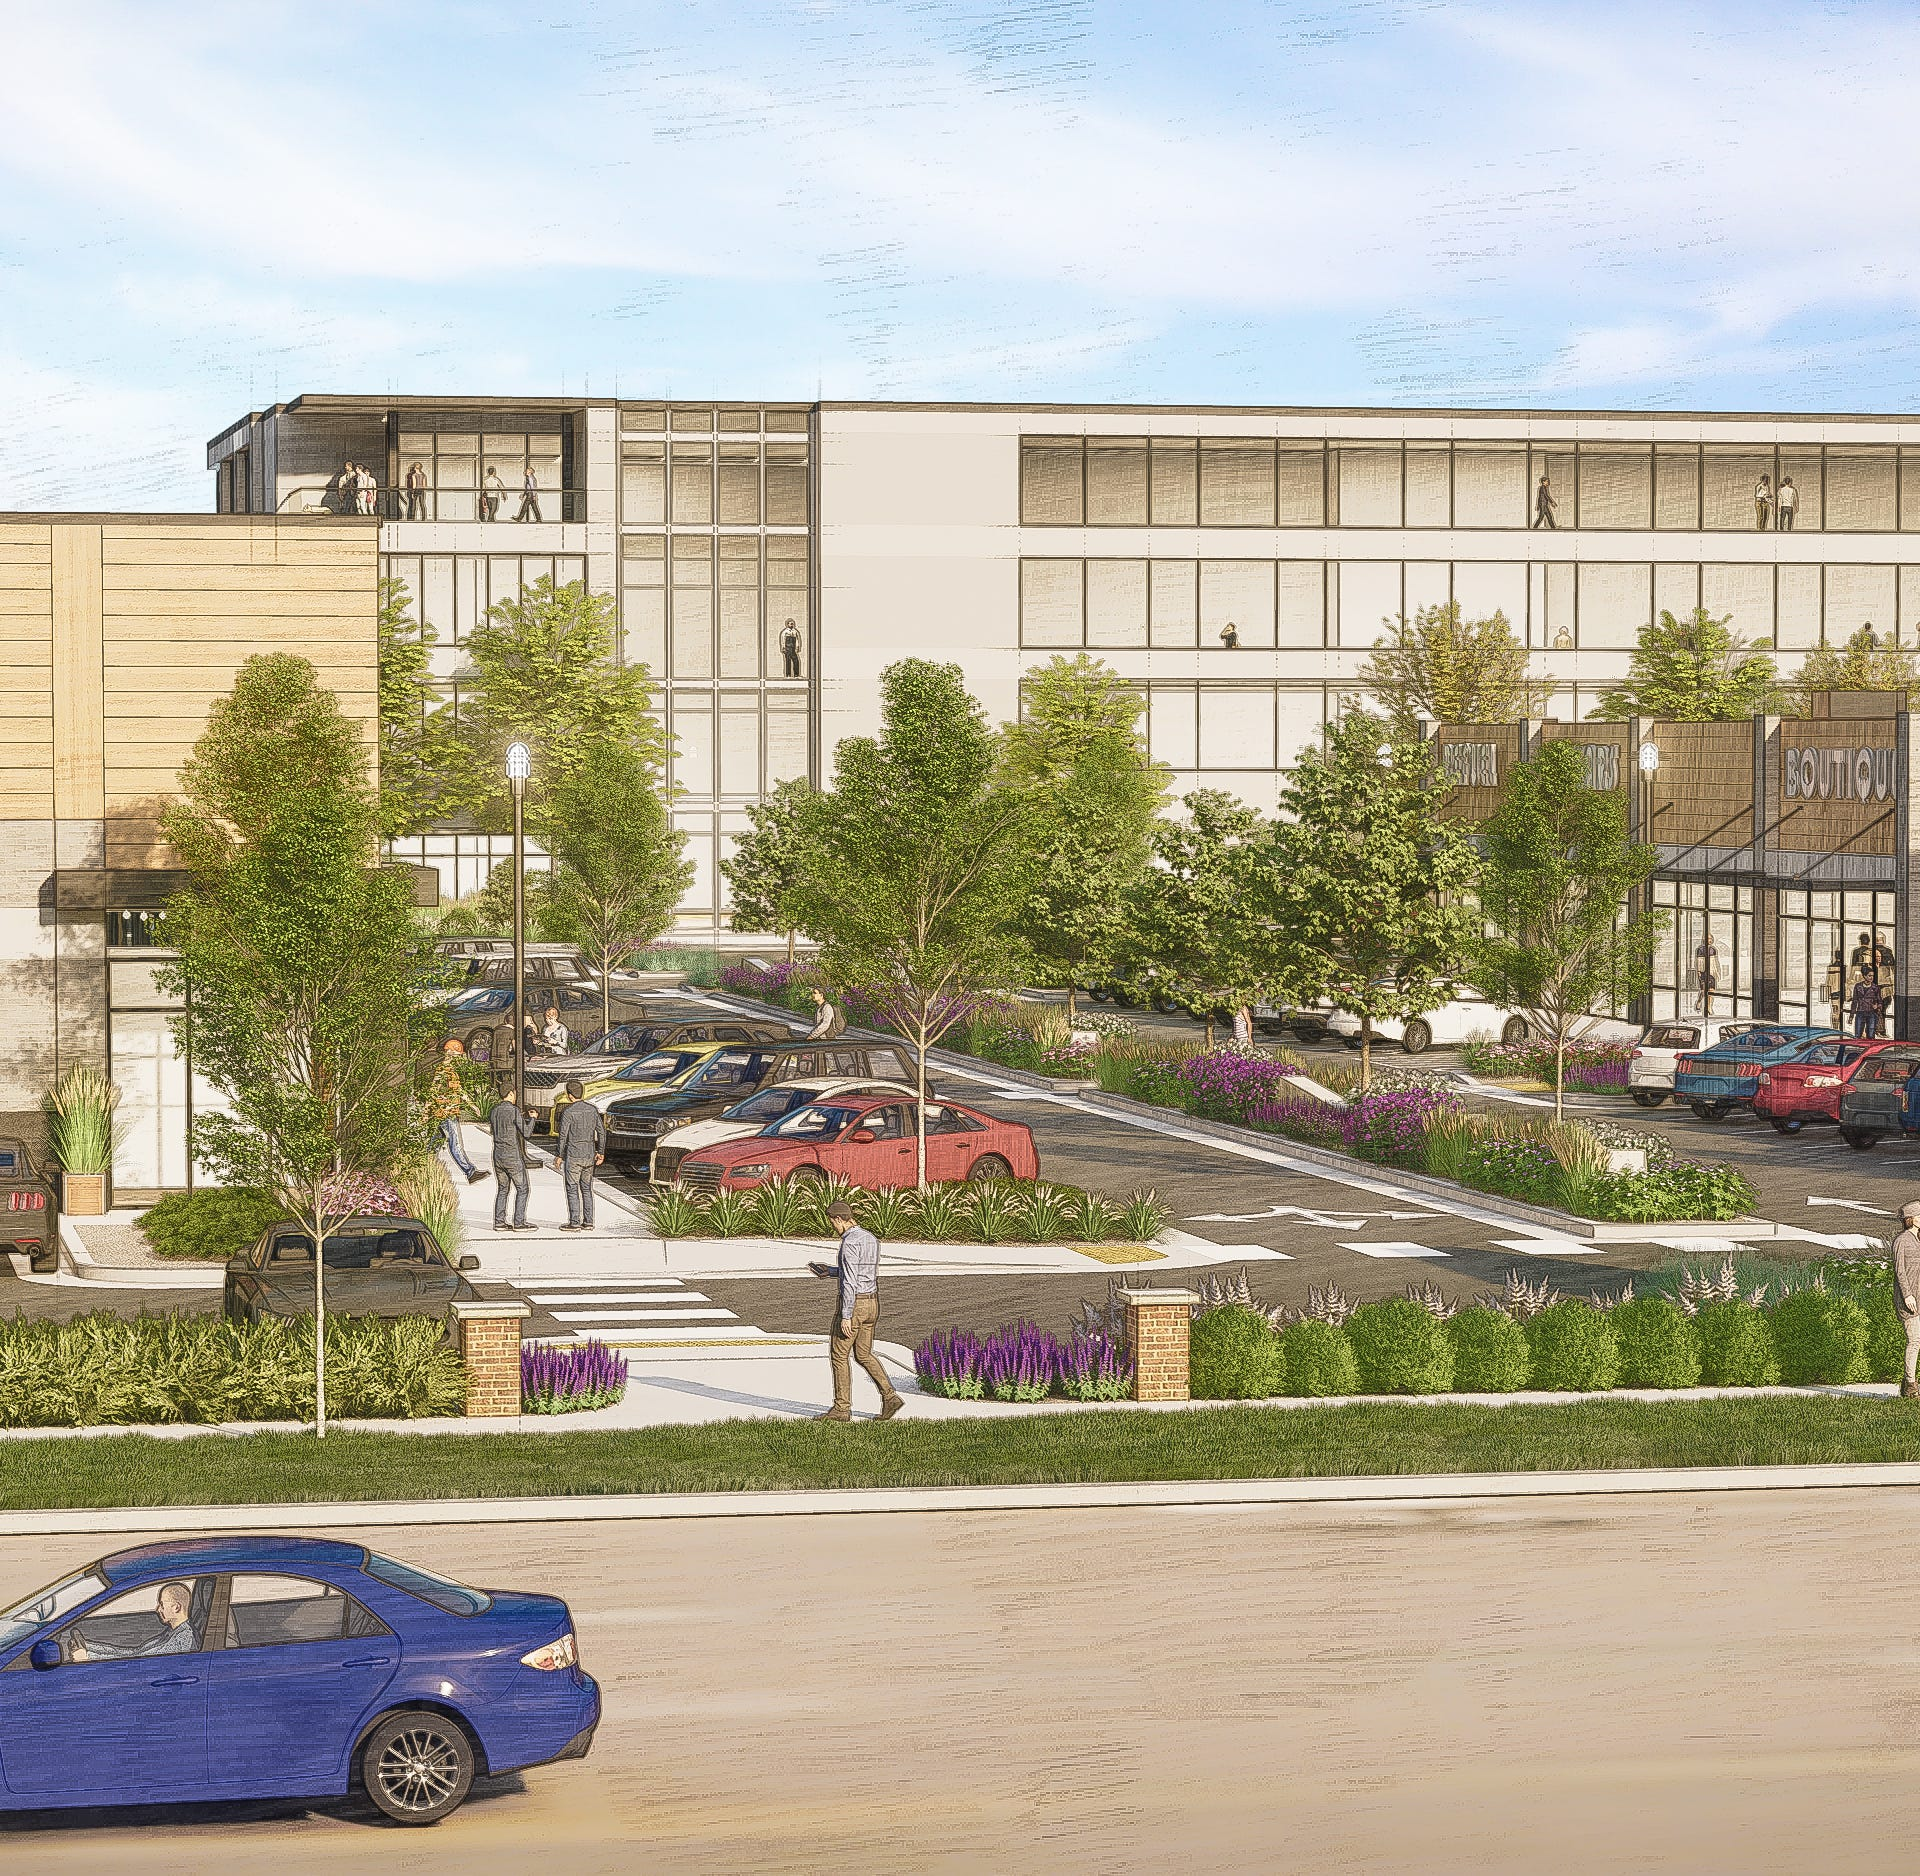 Empire Place to open in 2020, bringing more retailers to West 41st